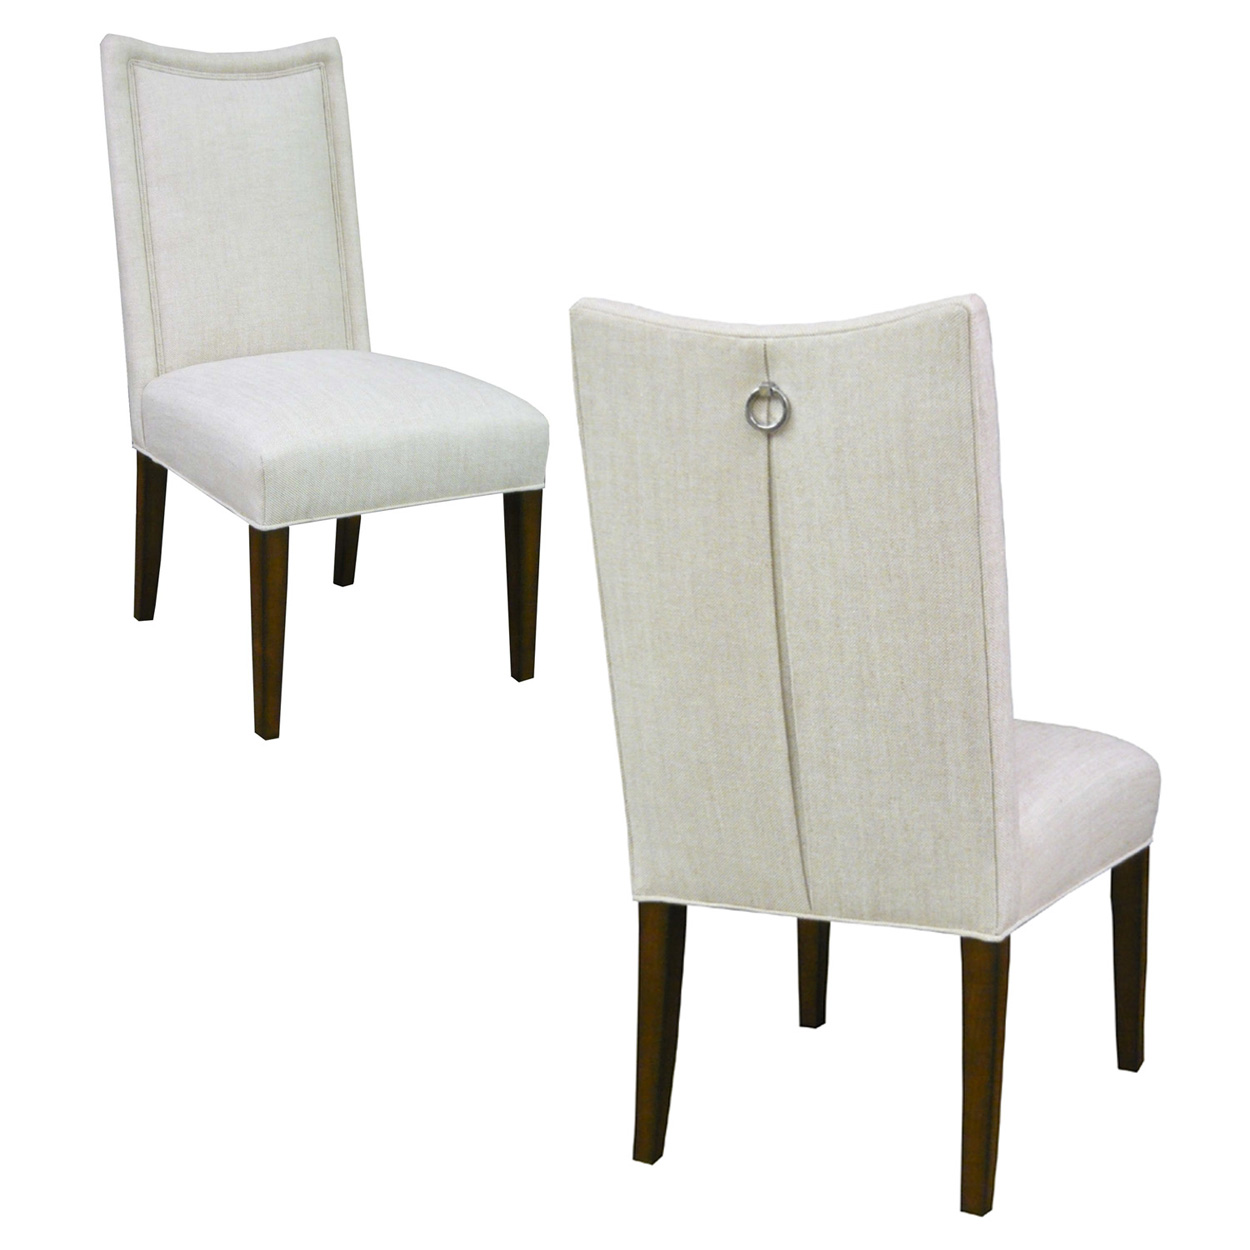 Custom Upholstered Side Chair with Pleated Back + Ring Pull